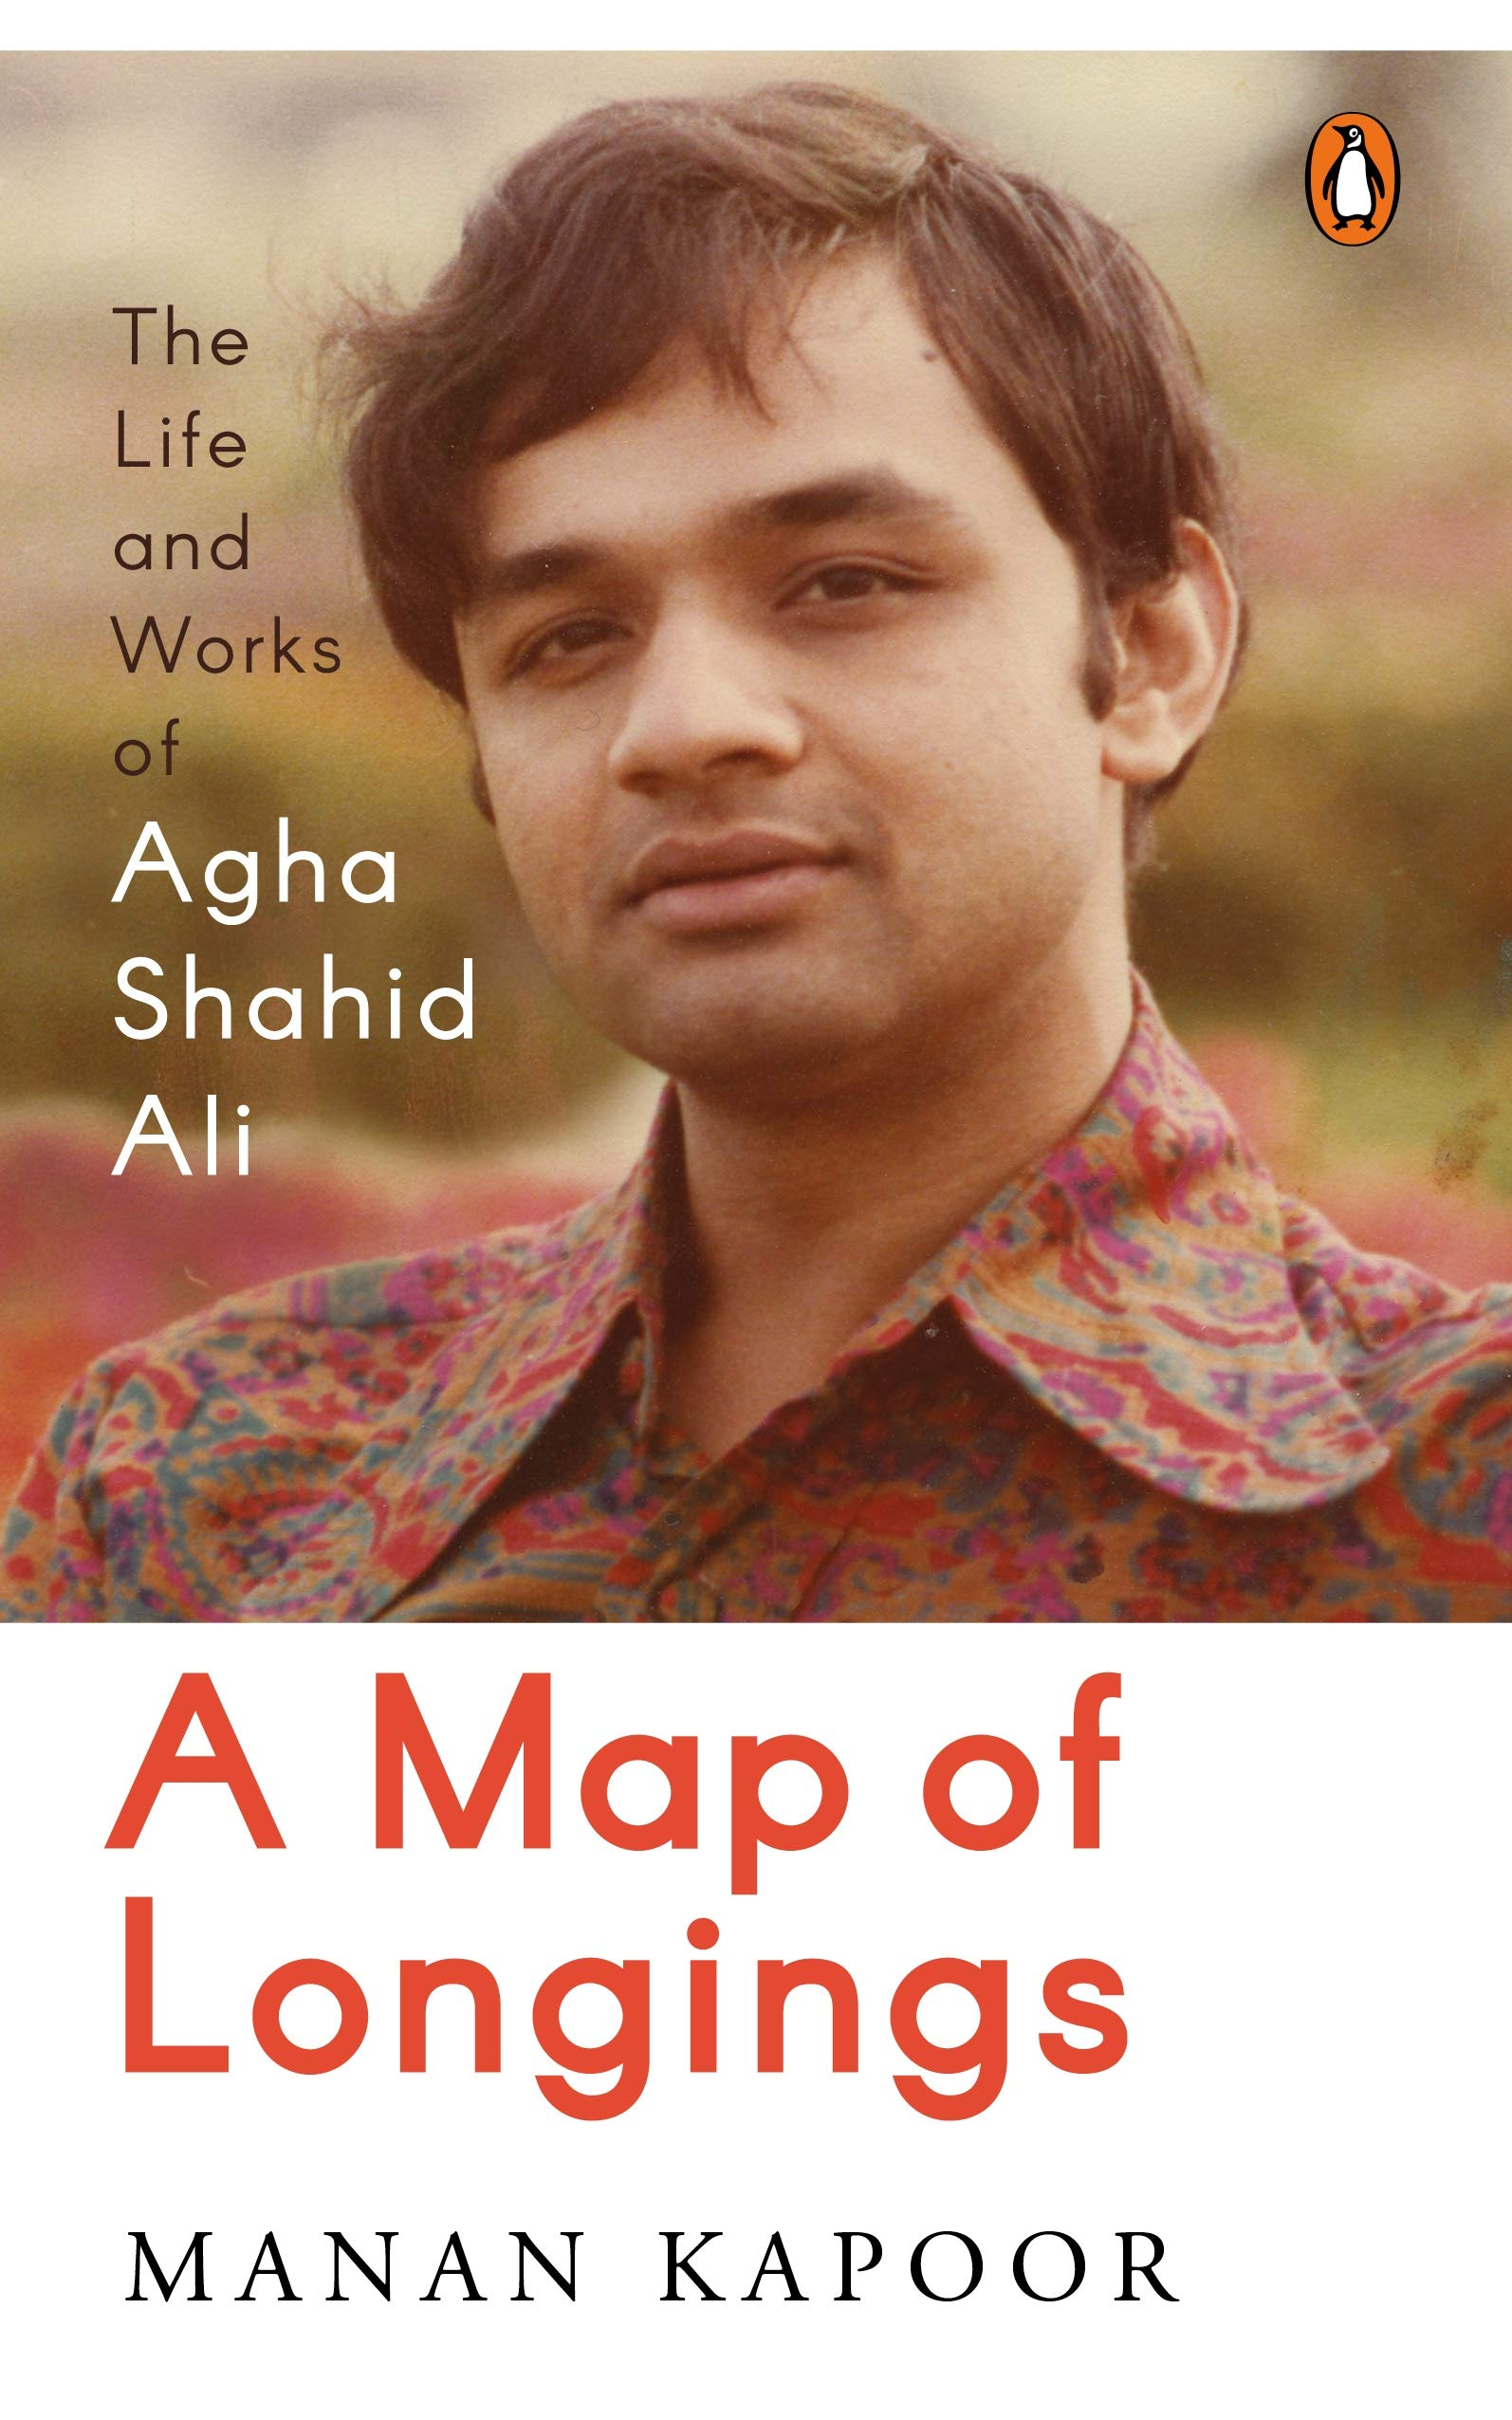 A Map of Longings: Life and Works of Agha Shahid Ali